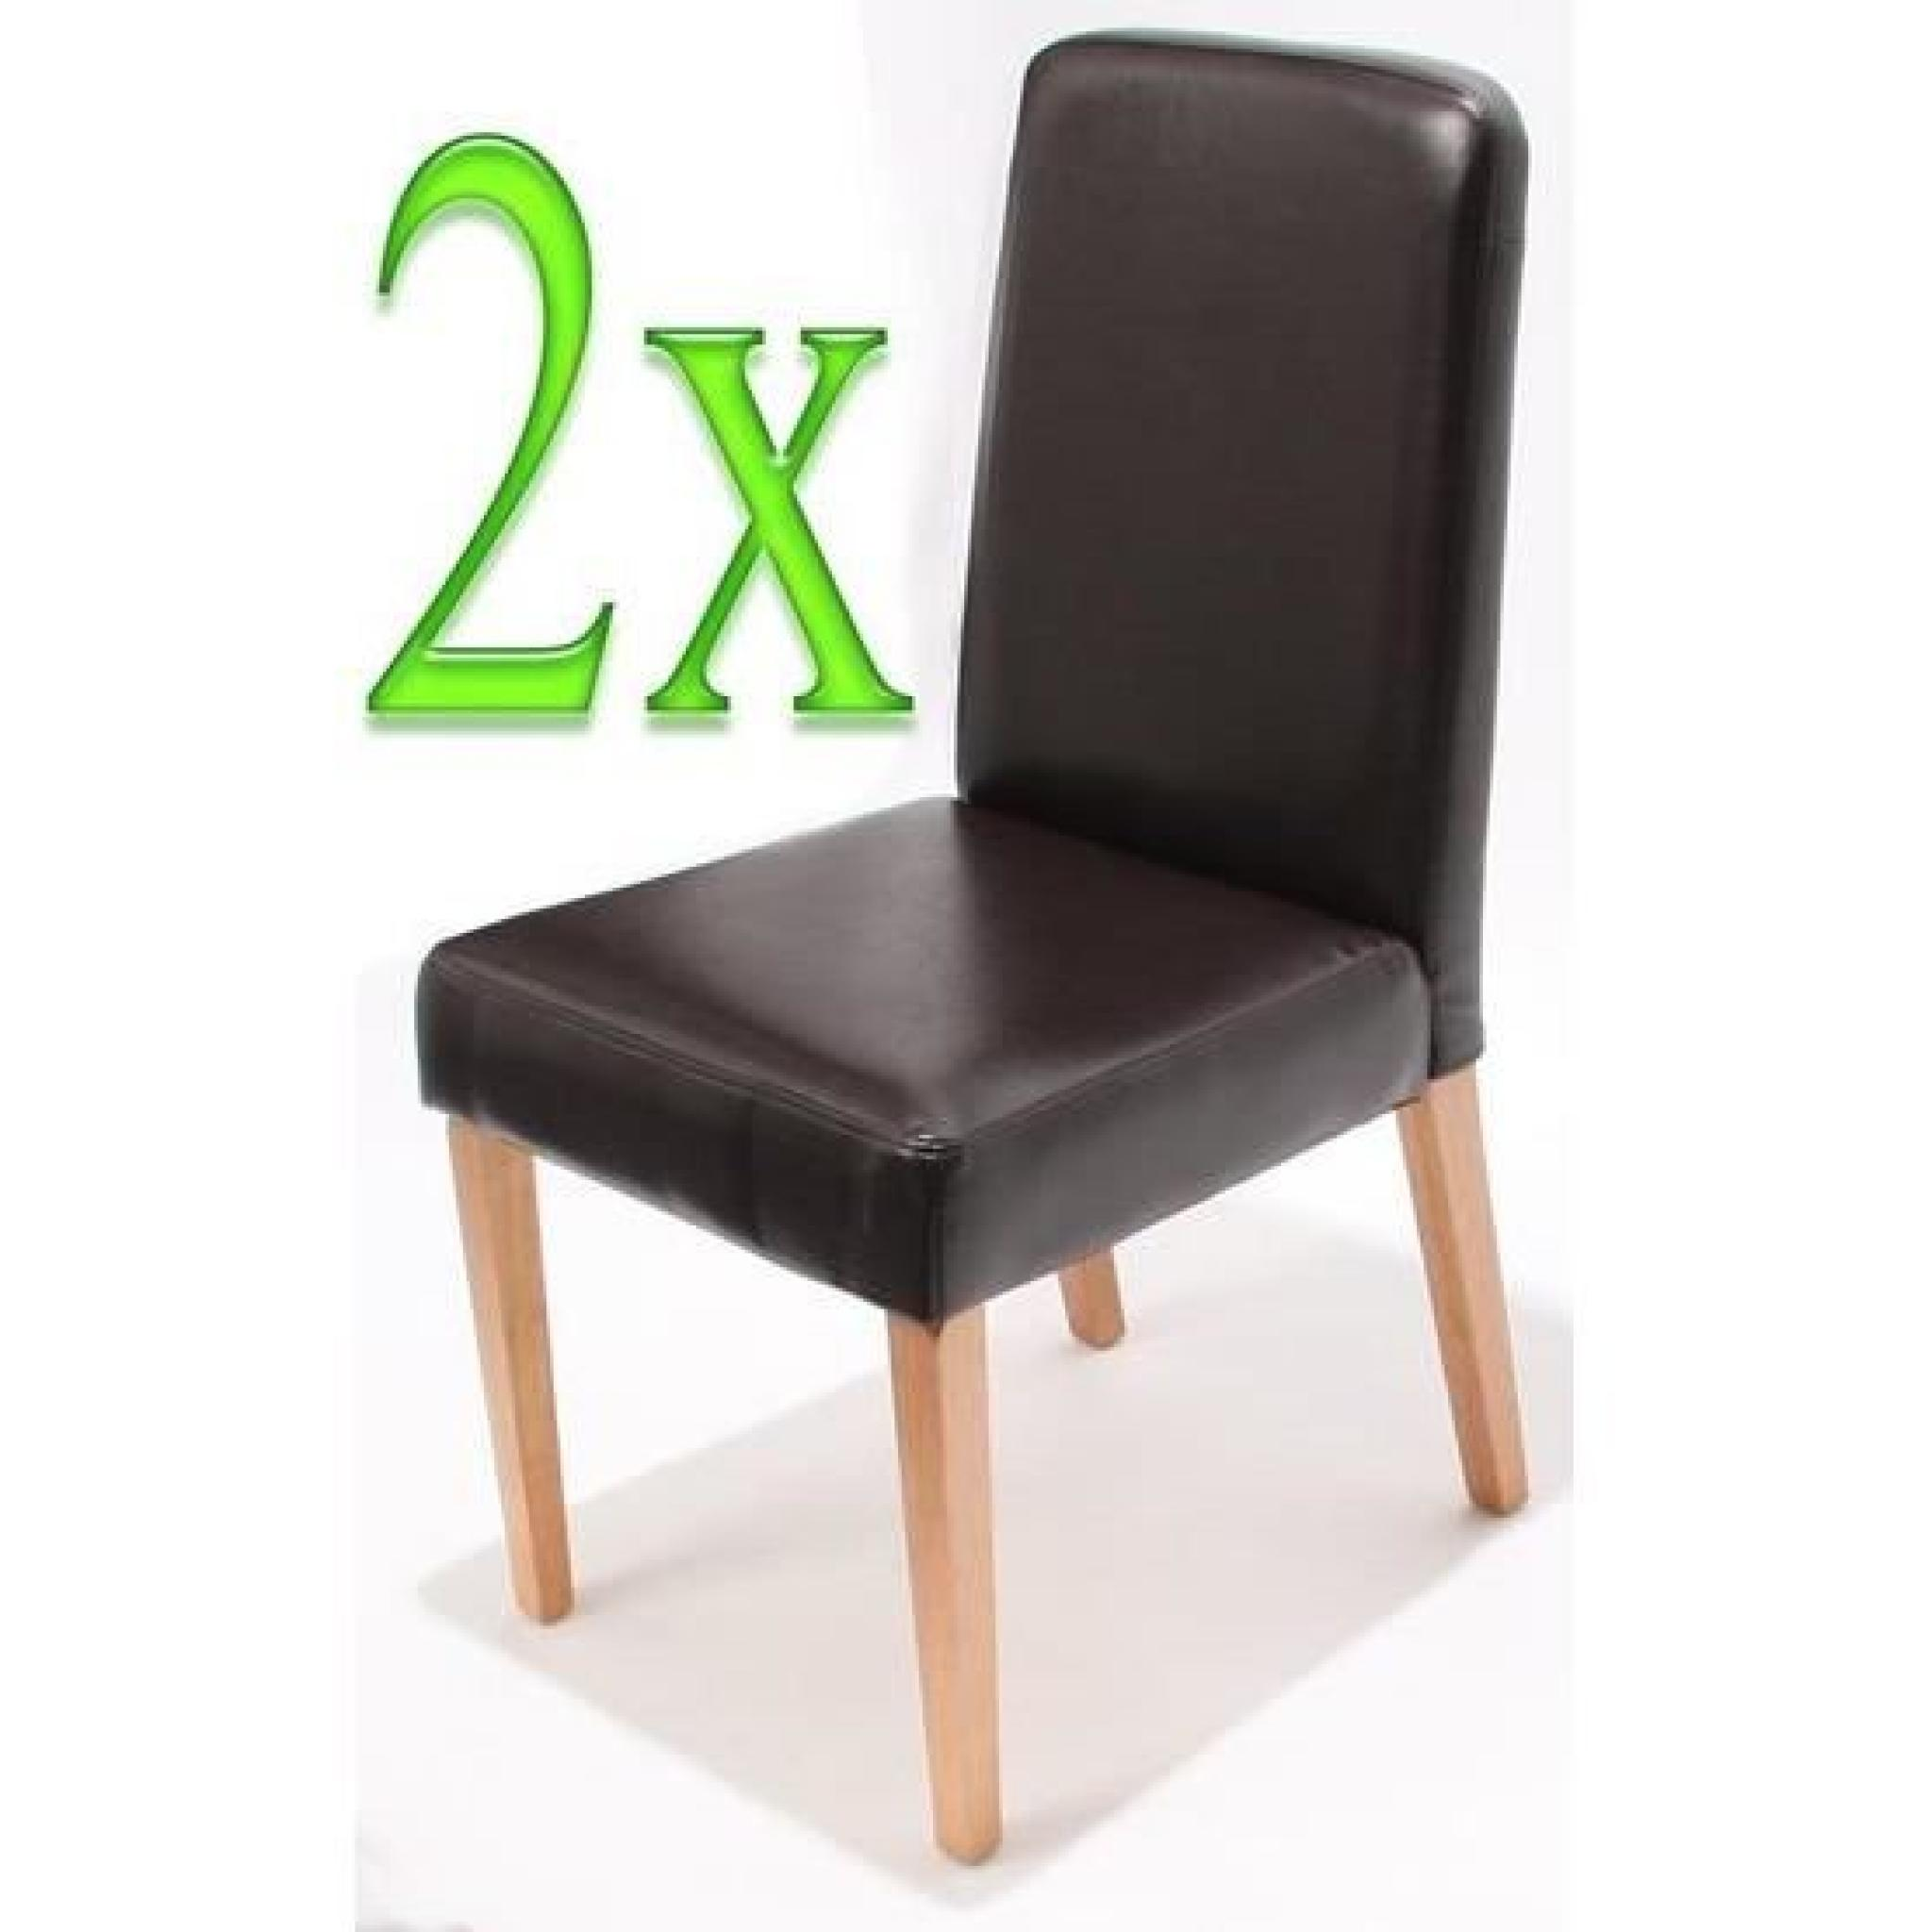 chaises de salle manger lot de 2 ancona cr me achat vente chaise salle a manger pas cher. Black Bedroom Furniture Sets. Home Design Ideas